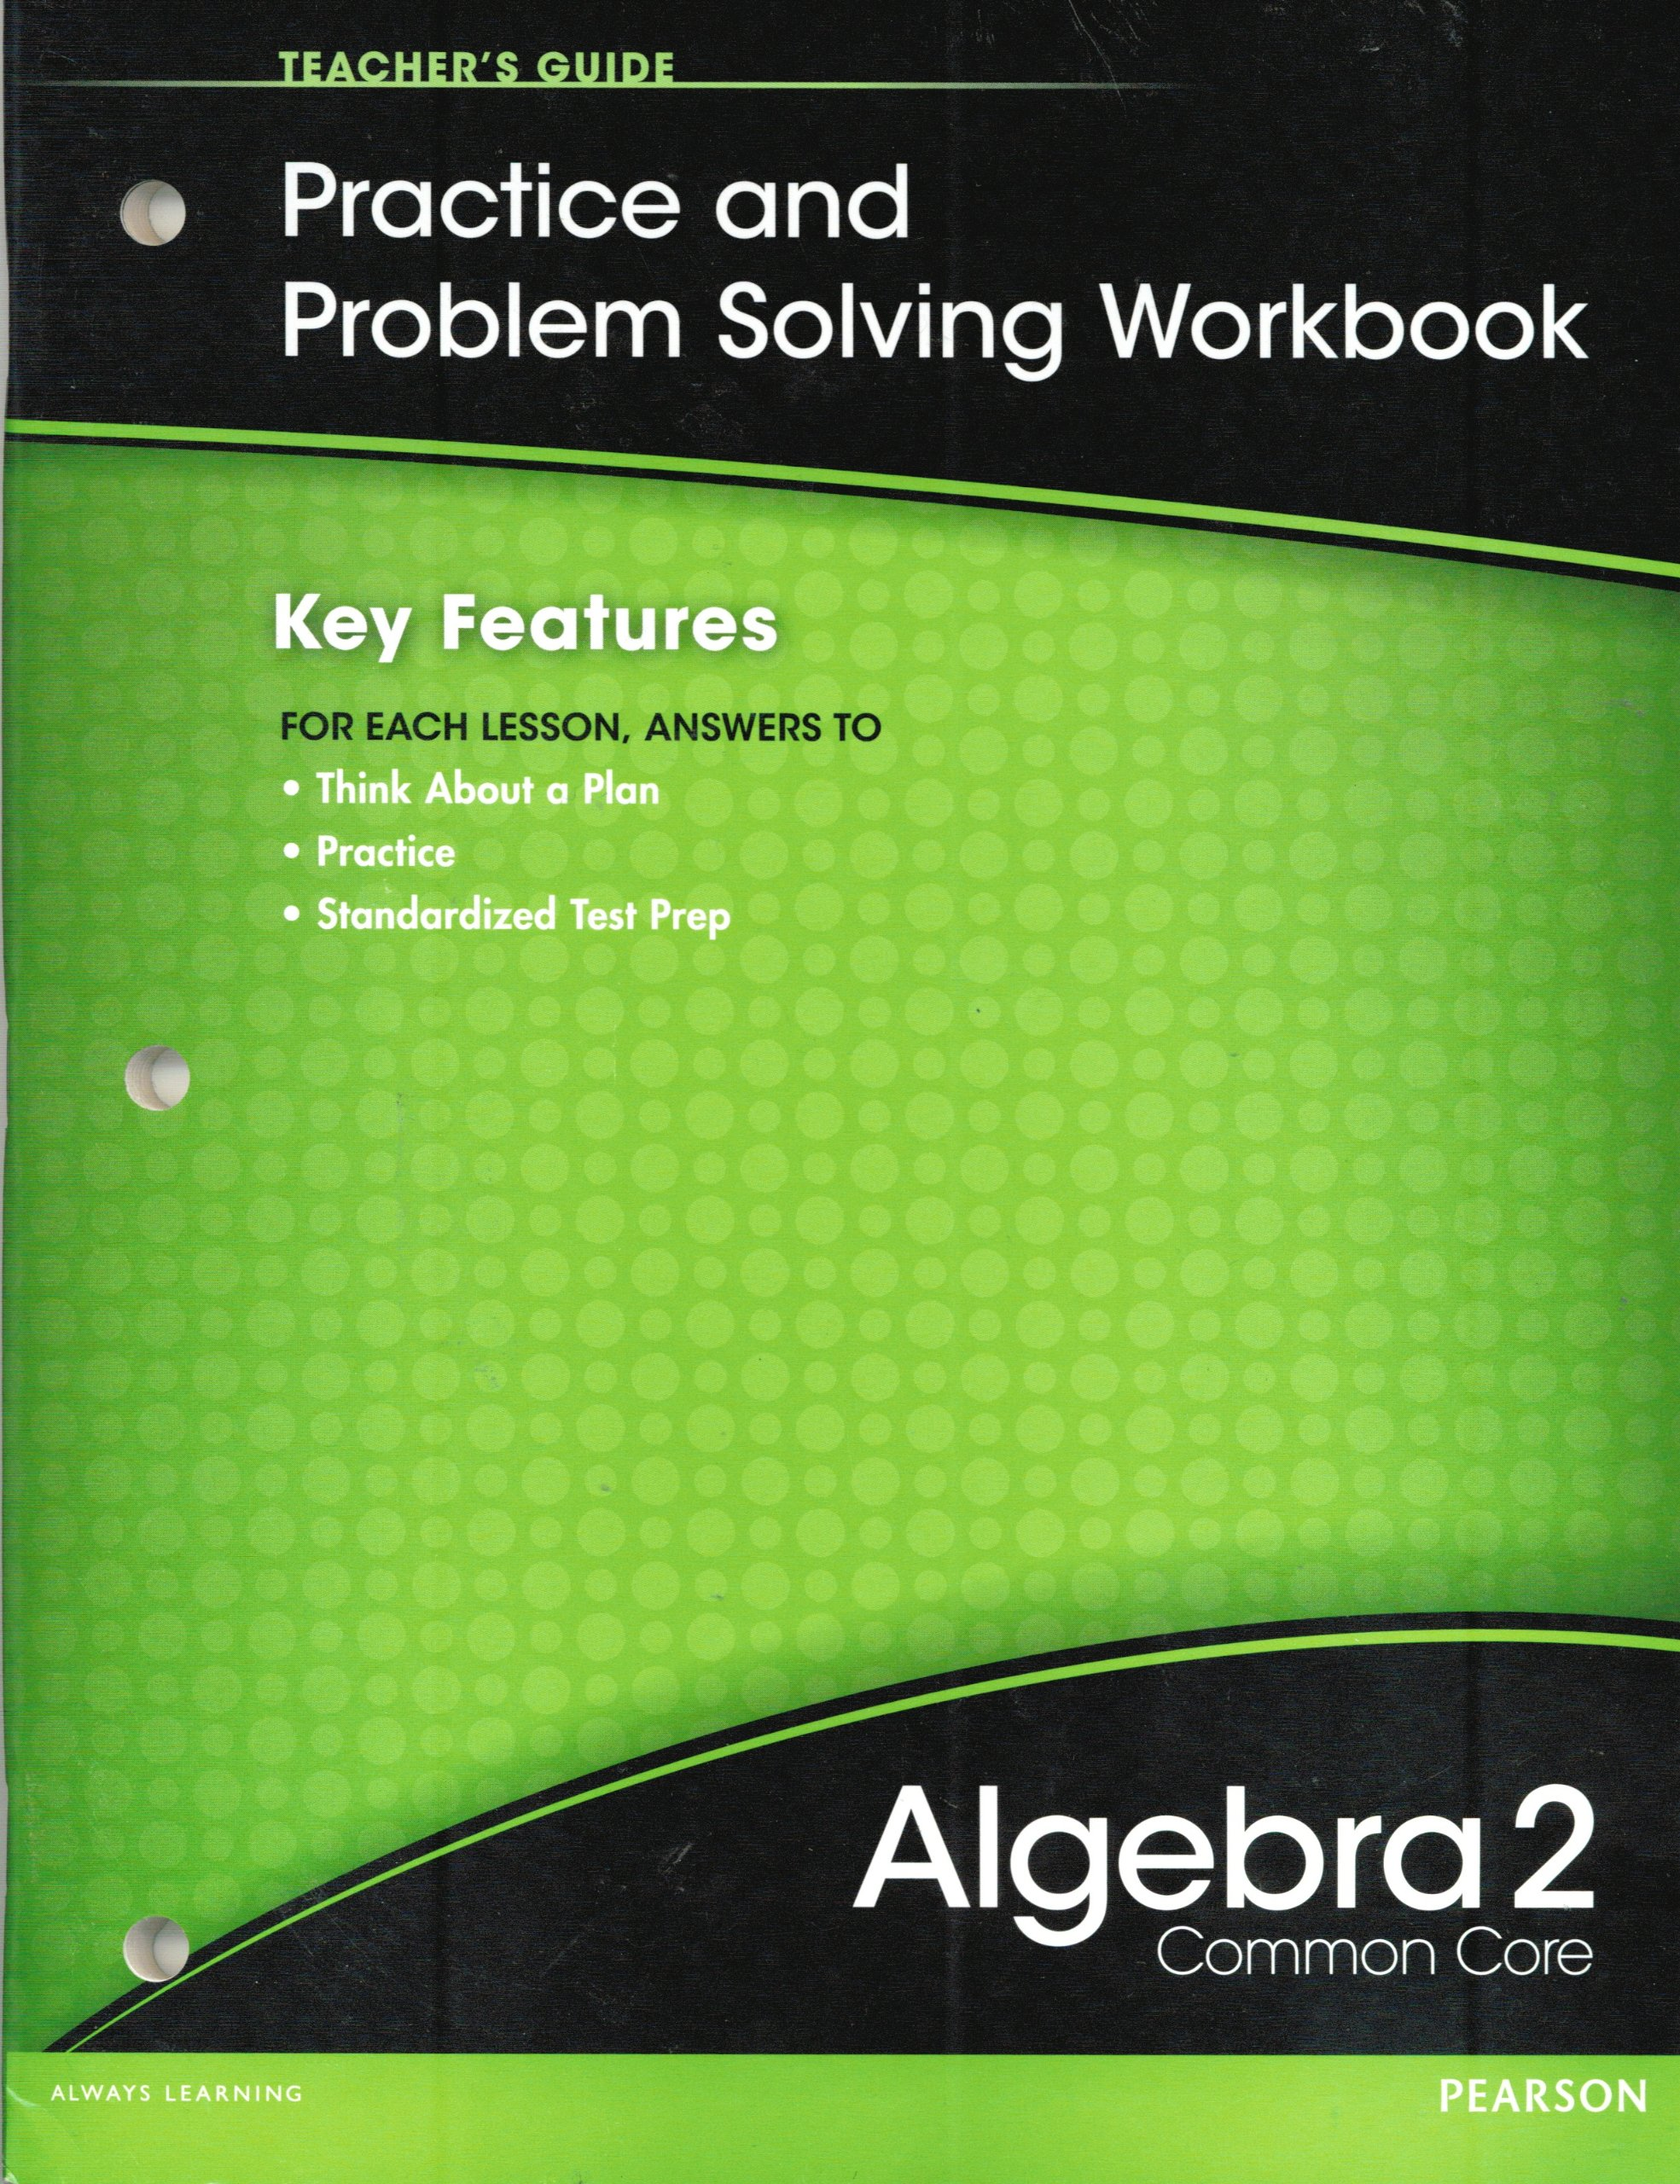 Pearson Algebra 1 Textbook Pdf Answers